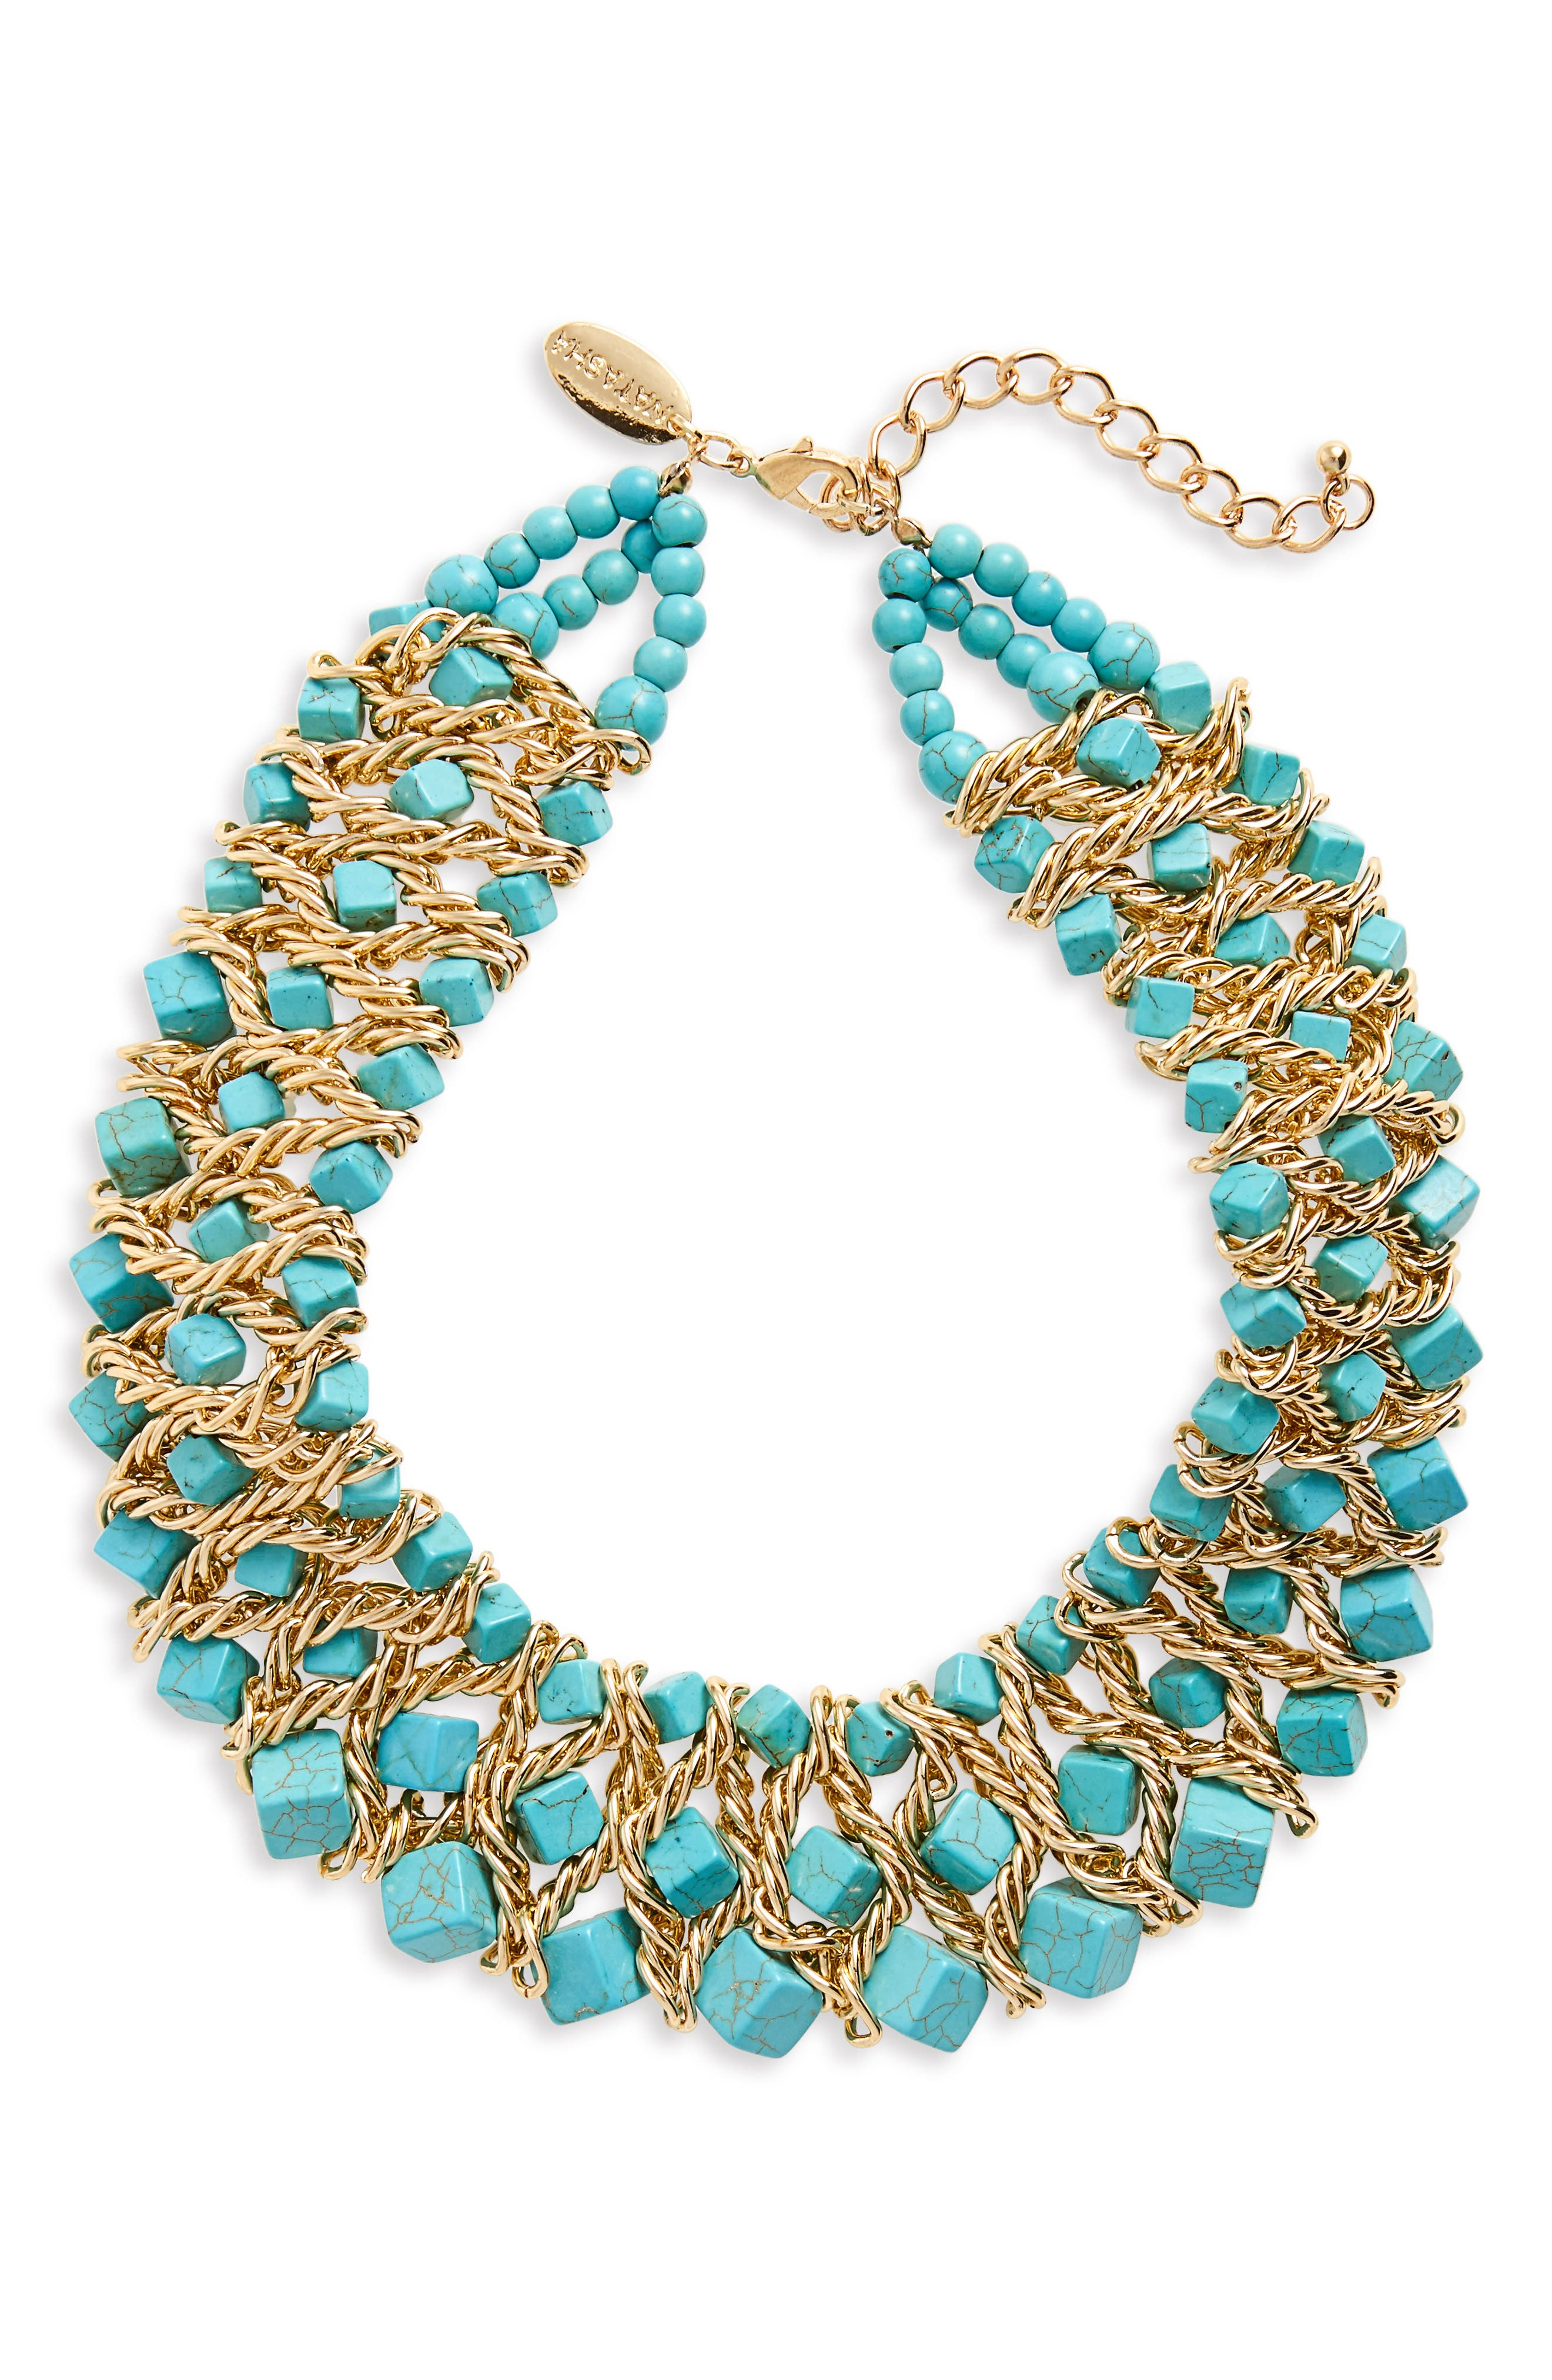 Chain & Stone Statement Necklace,                             Main thumbnail 1, color,                             400